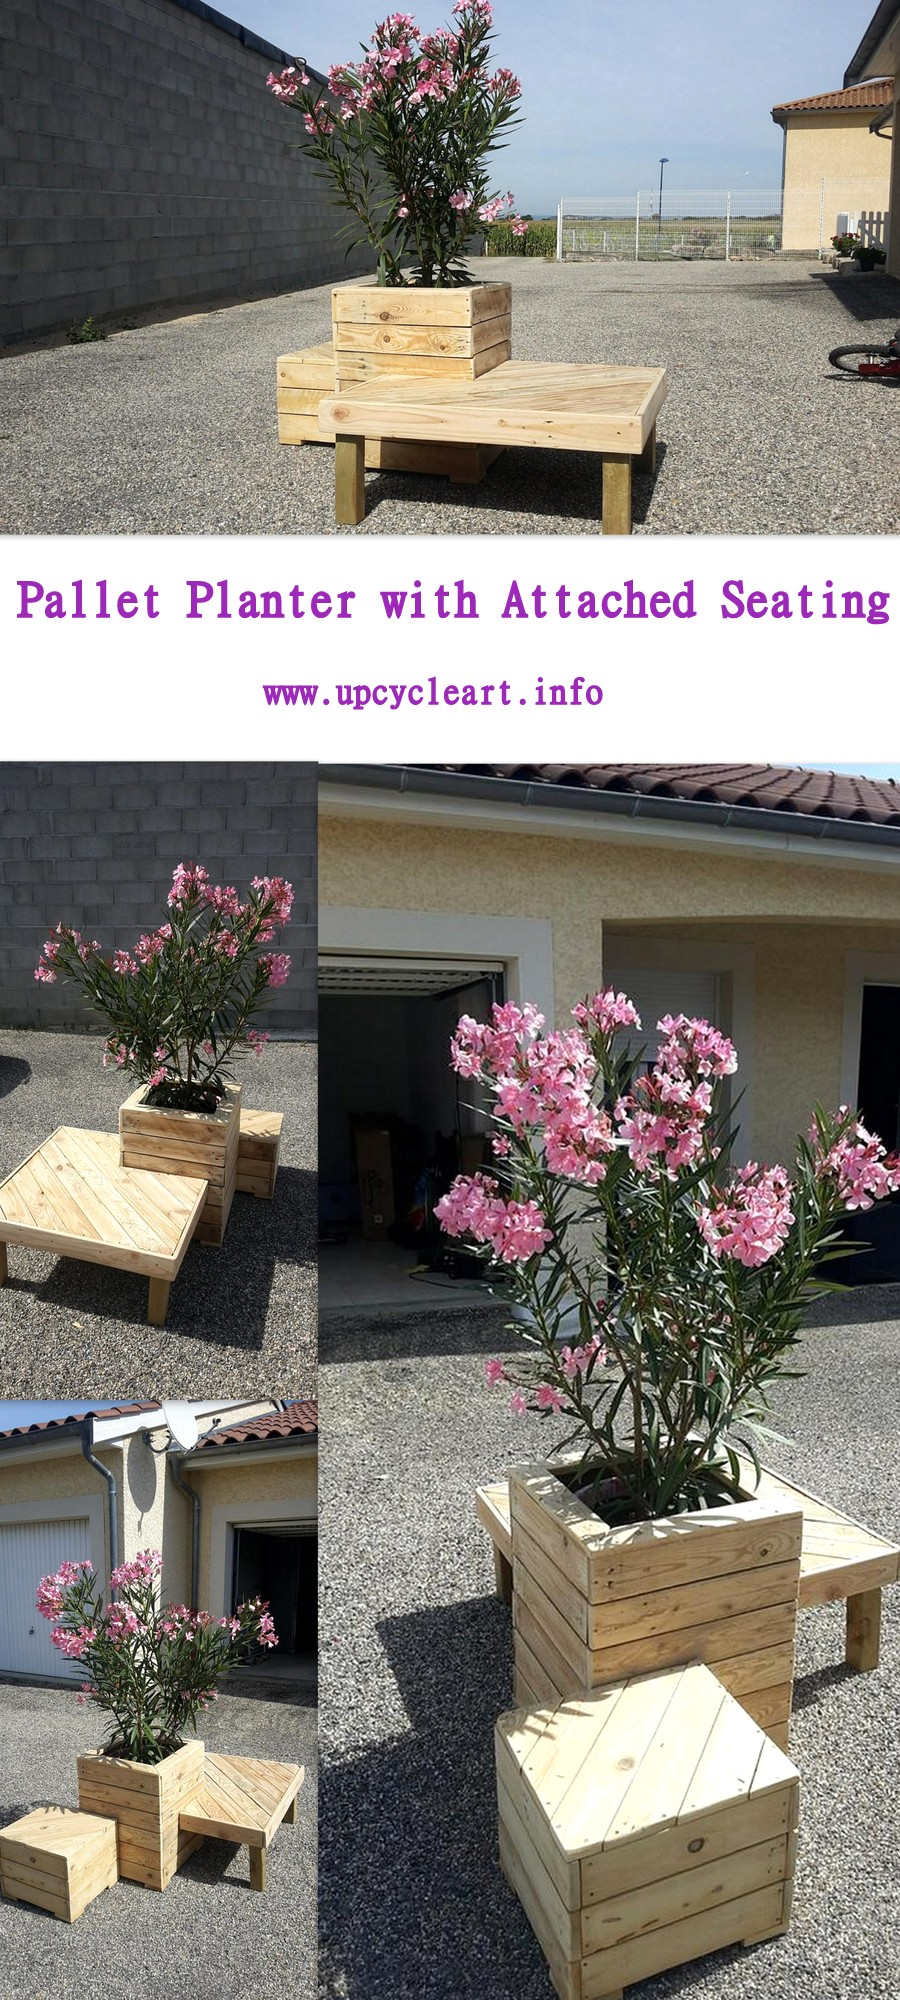 Pallet Planter with Attached Seating